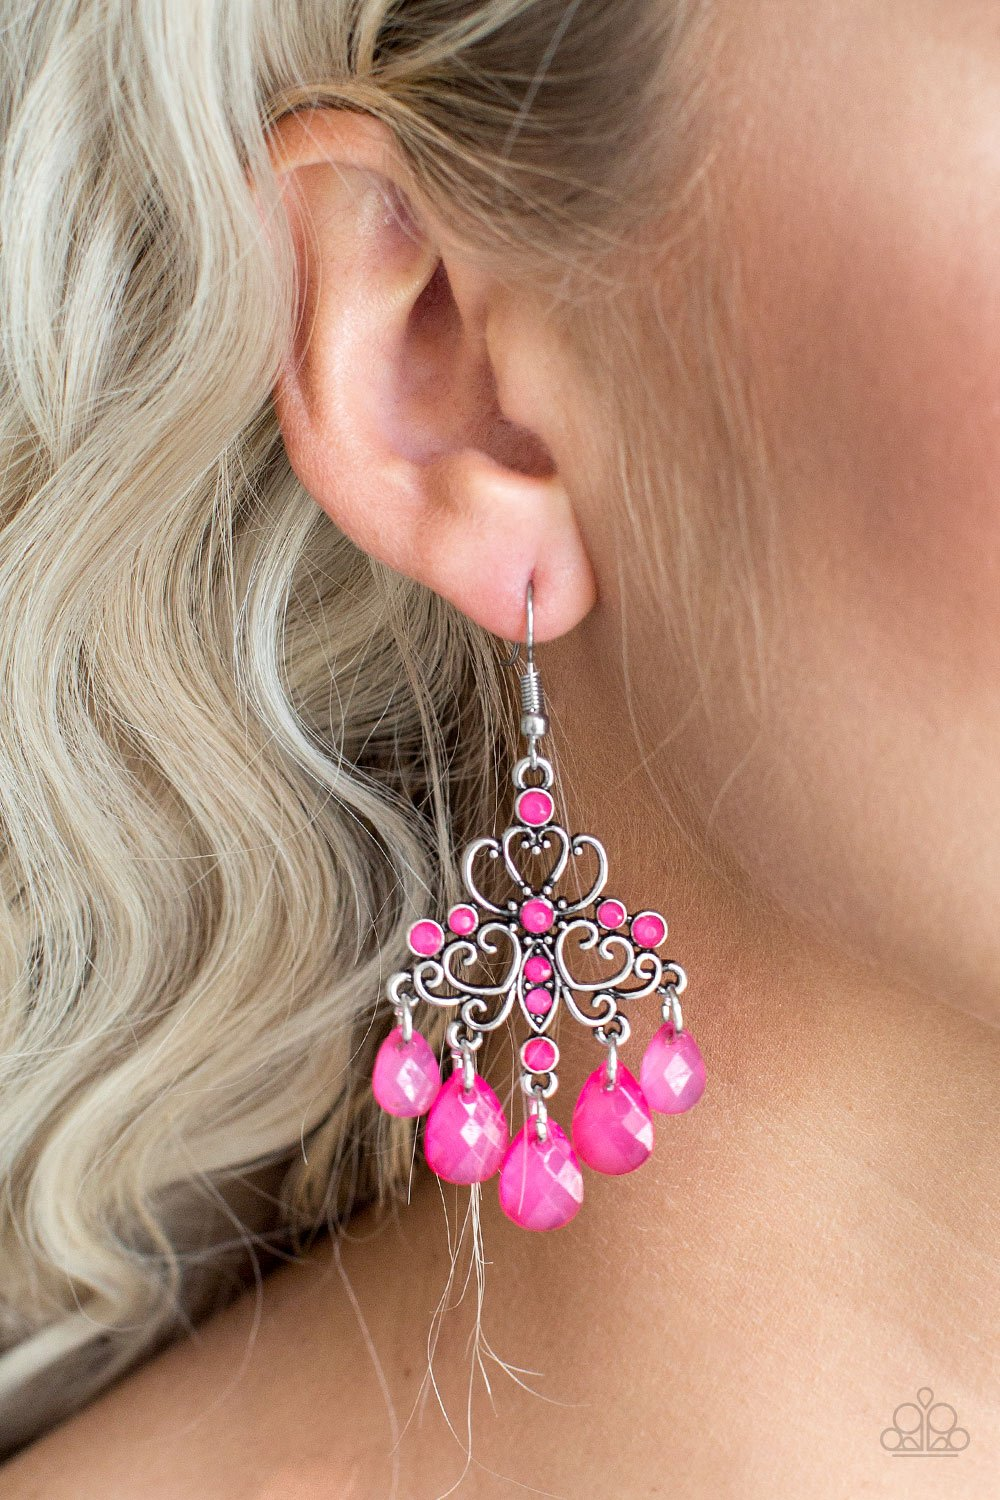 Dip It GLOW-pink-Paparazzi earrings